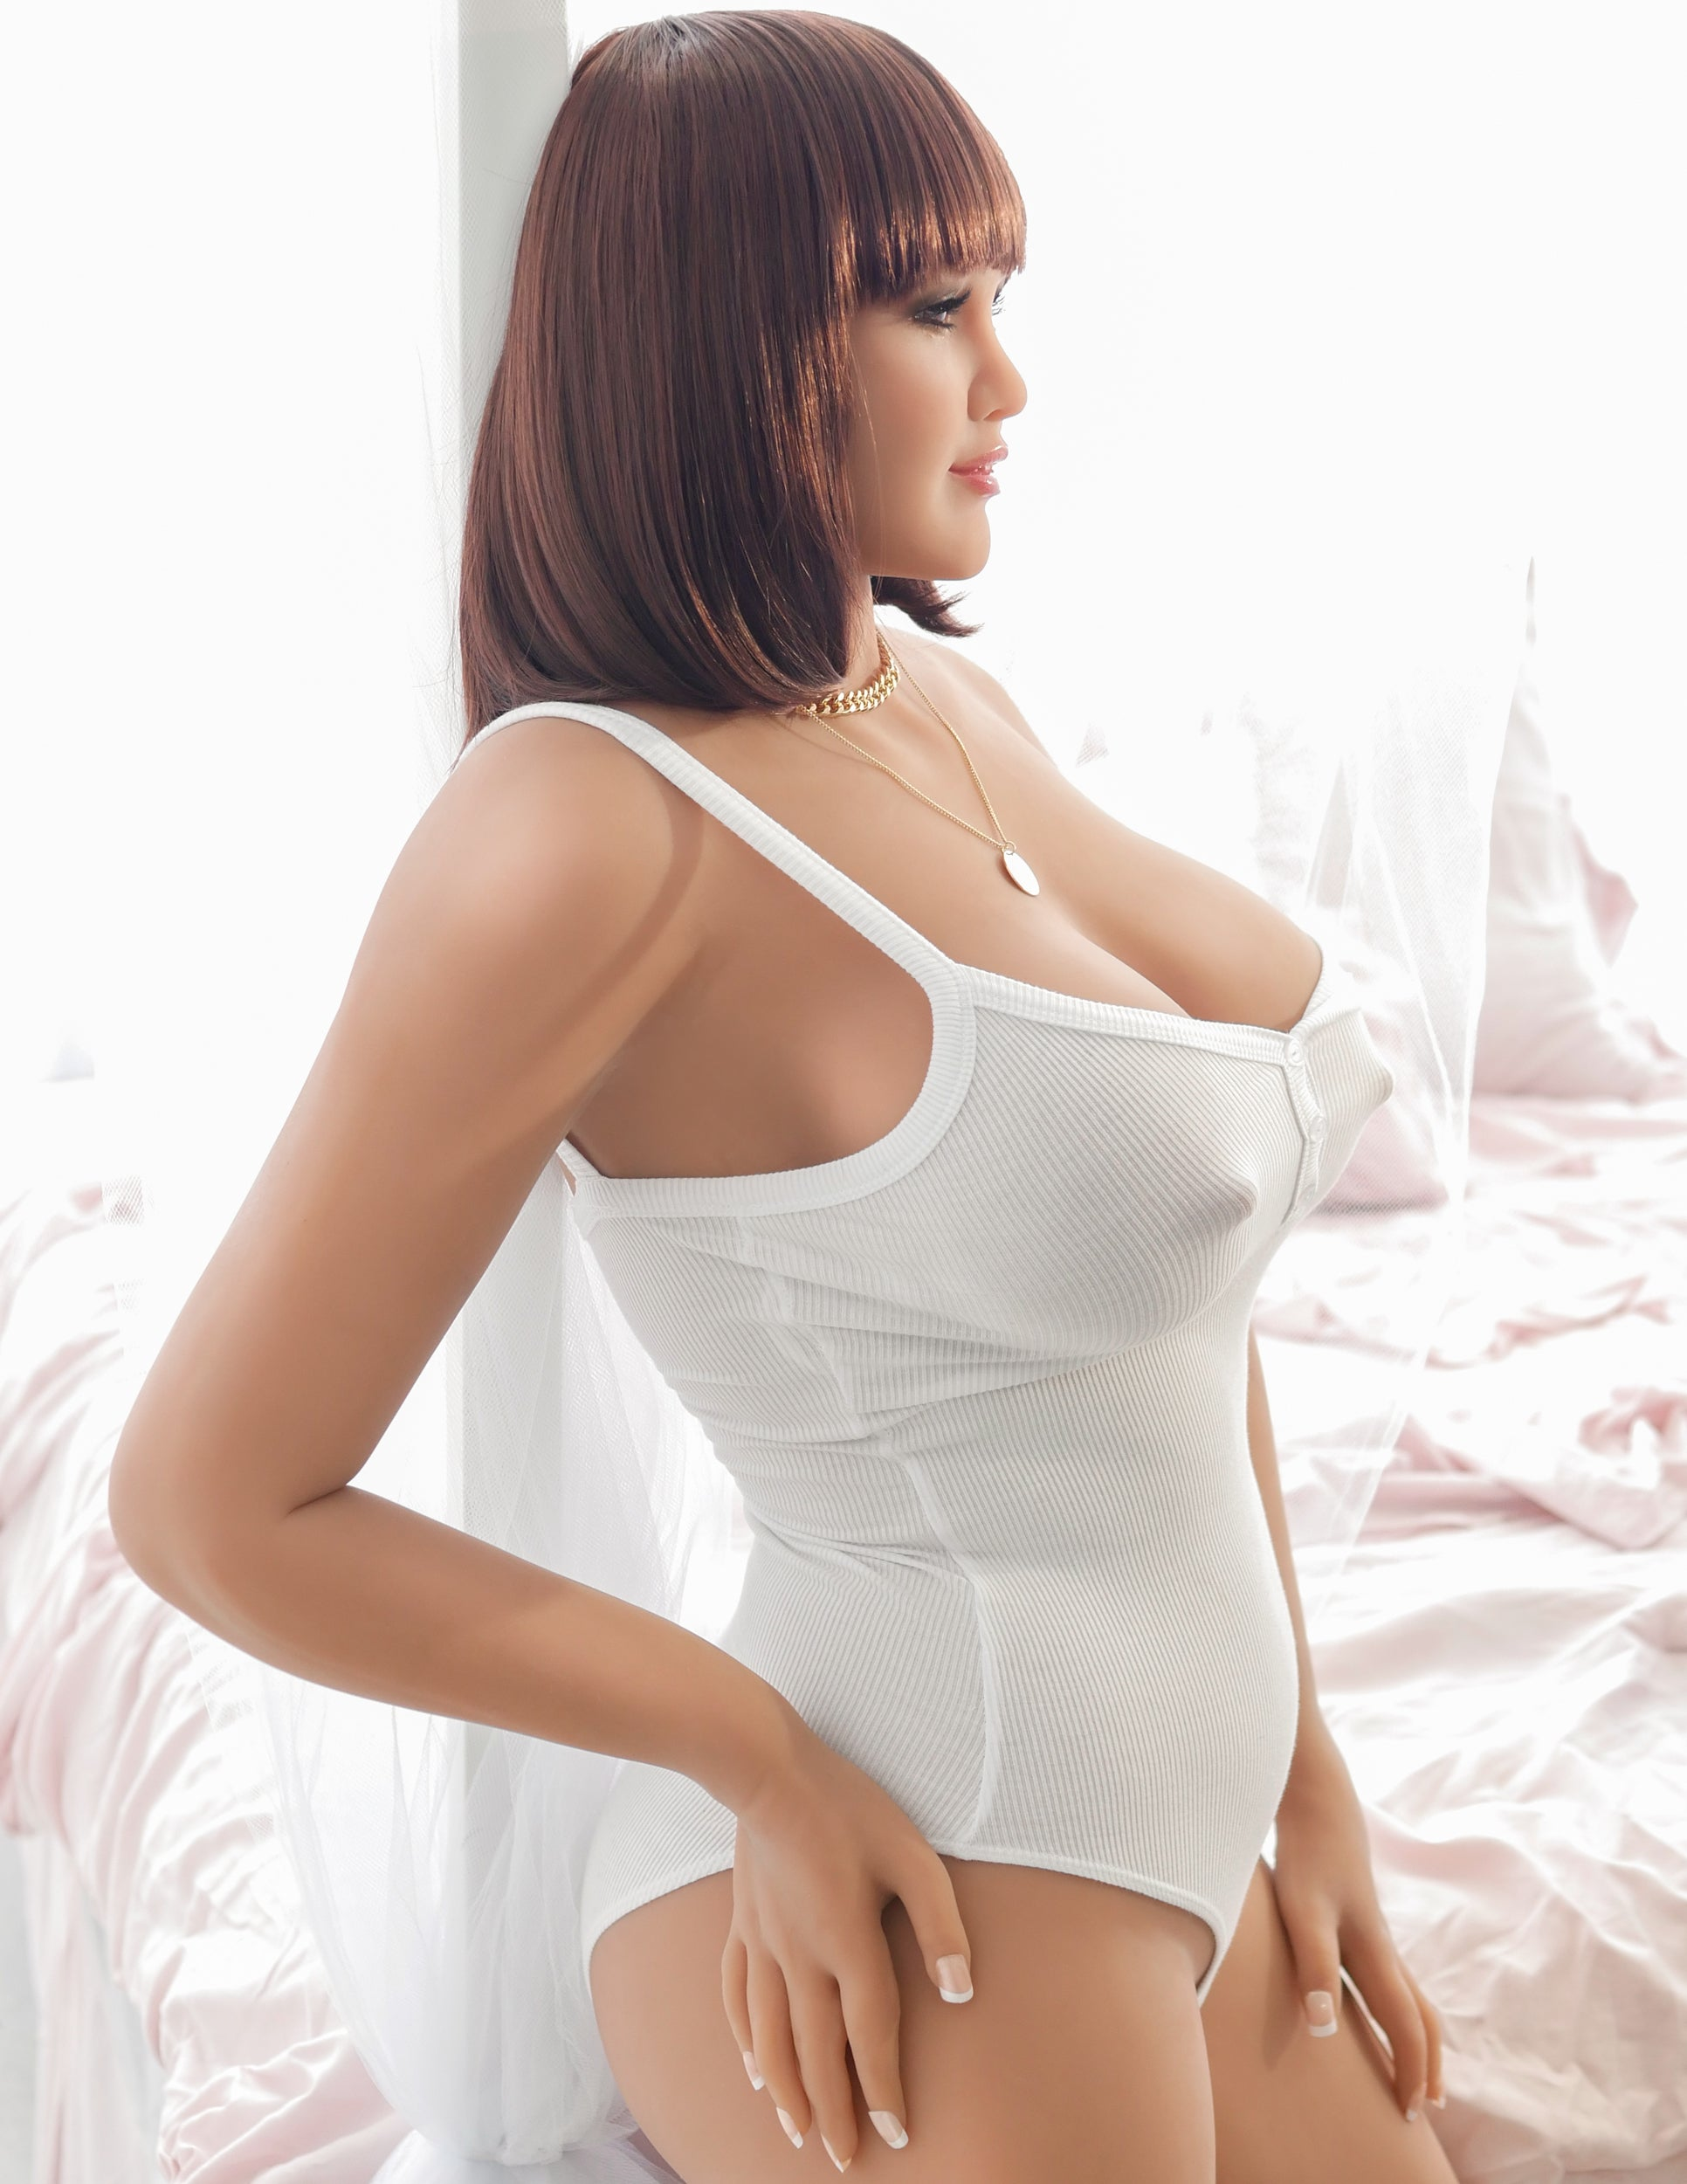 Ultimate Fantasy Dolls - Mia in profile wearing a white body suit